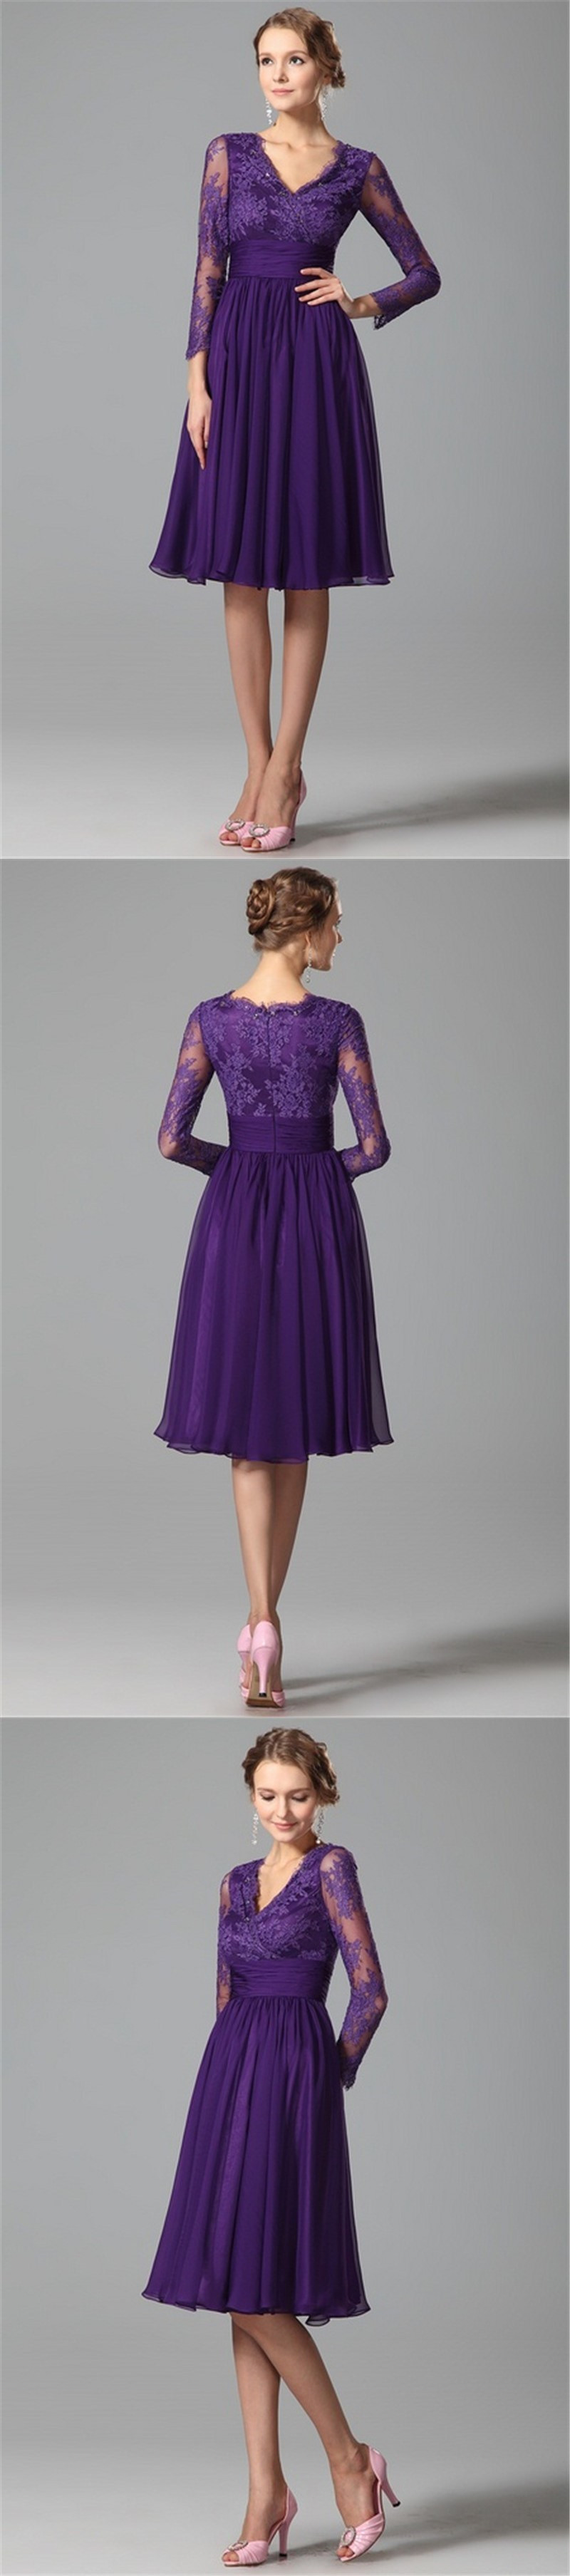 Purple bridesmaid dressknee length bridesmaid dressshort